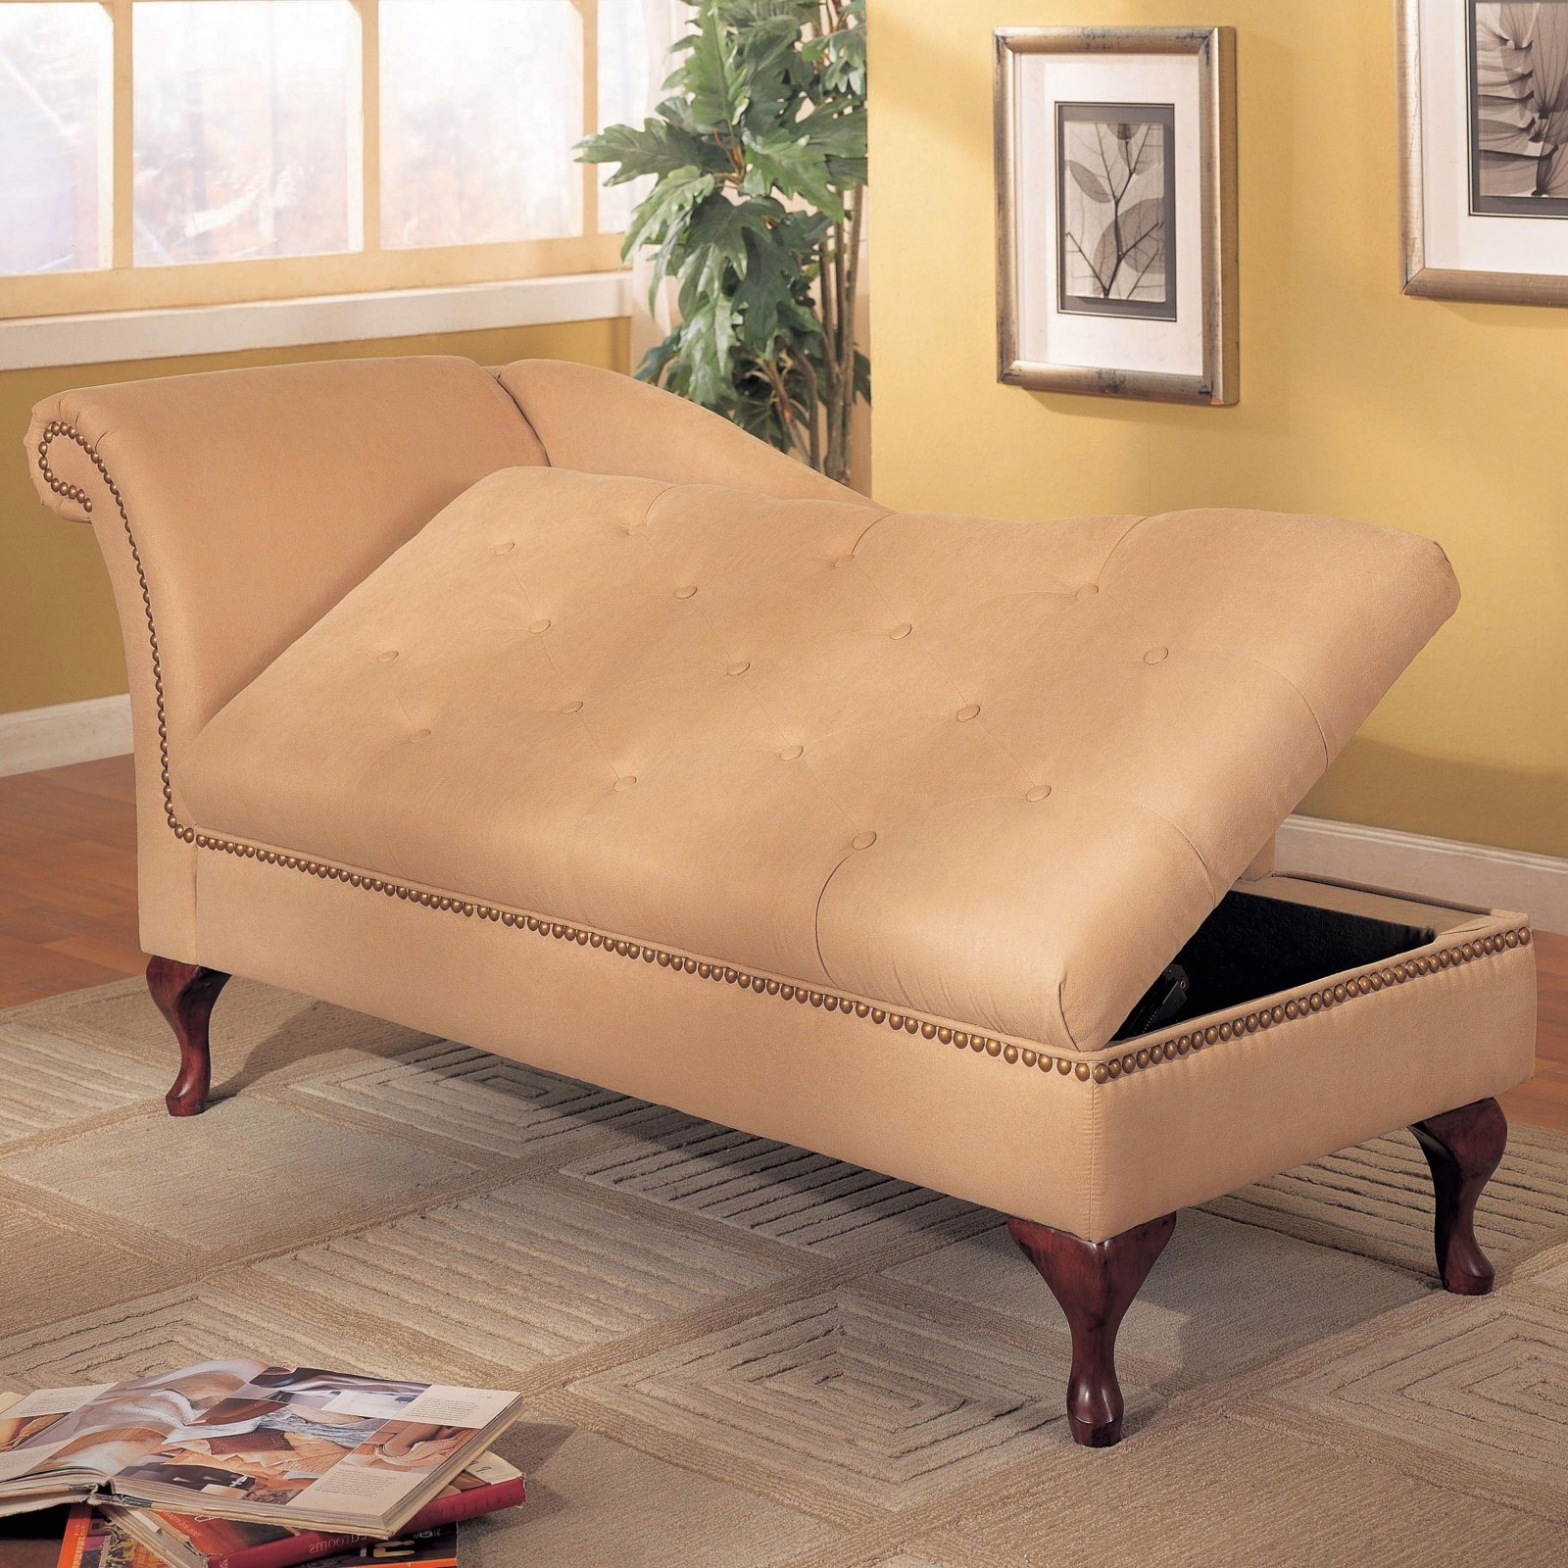 Most Popular Home Decor: Small Bedroom Chair : Cheap Chaise Lounge Chase With Regard To Cheap Chaise Lounge Chairs (View 12 of 15)